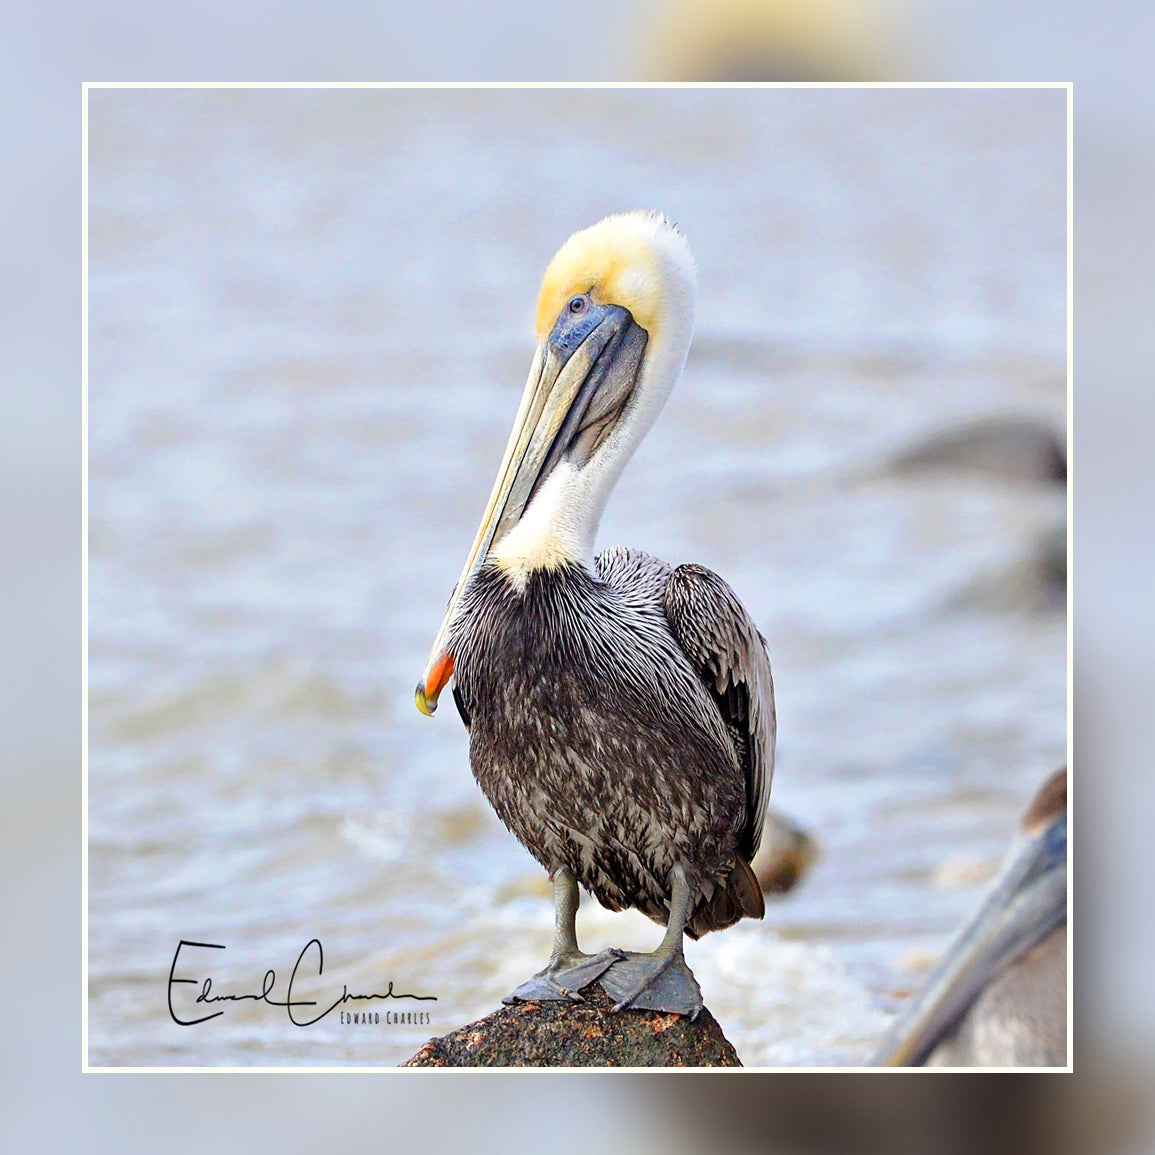 Birds - Pelican from Texas City dike